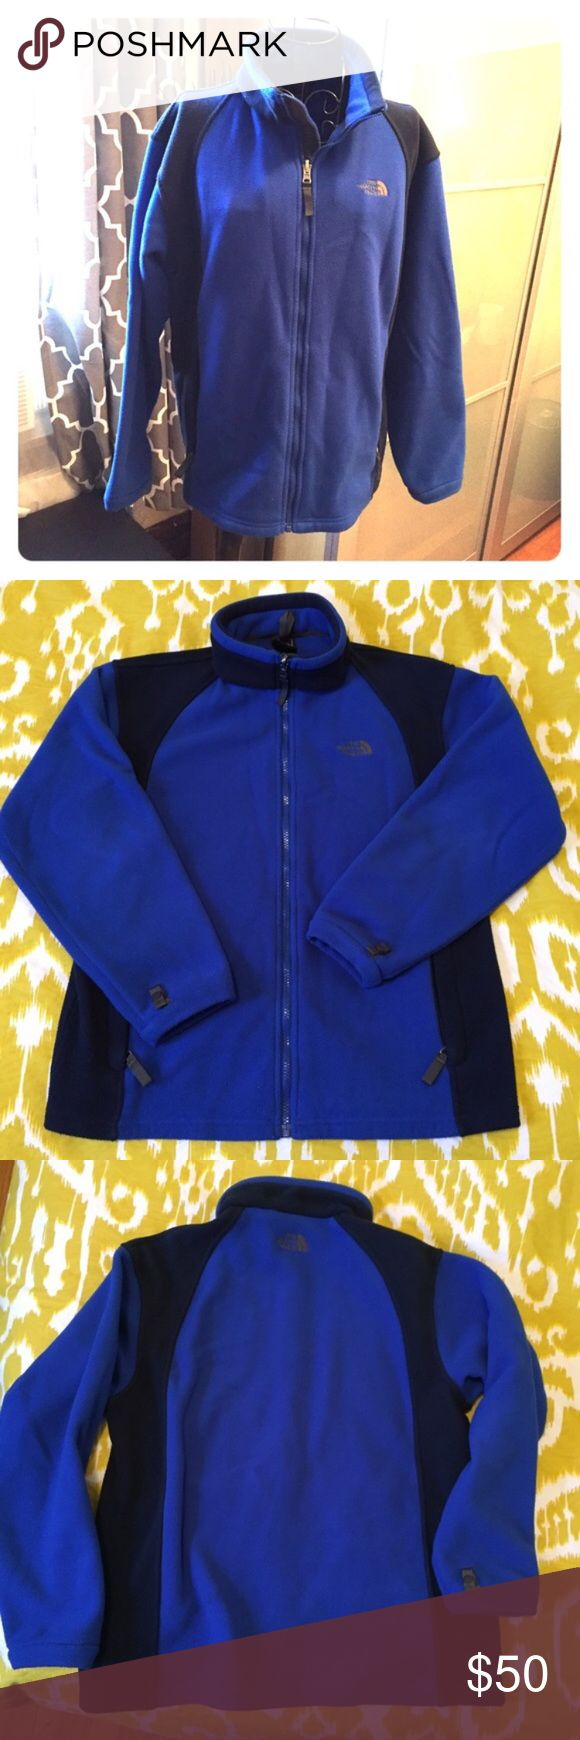 "NorthFace Fleece Jacket Bright blue with navy accents. In very good shape just some minor pilling as most fleece does. It is a straight fit and does not have the drawstring at the bottom. THIS IS ACTUALLY A BOYS EXTRA LARGE but fits like a women's medium. I am a dress size 8/10 because I have a larger chest and it fits me just fine. 22'' wide from arm pit to arm pit, 27'' long from top of collar to bottom hem, arm length is 20"" from arm pit The North Face Jackets & Coats"